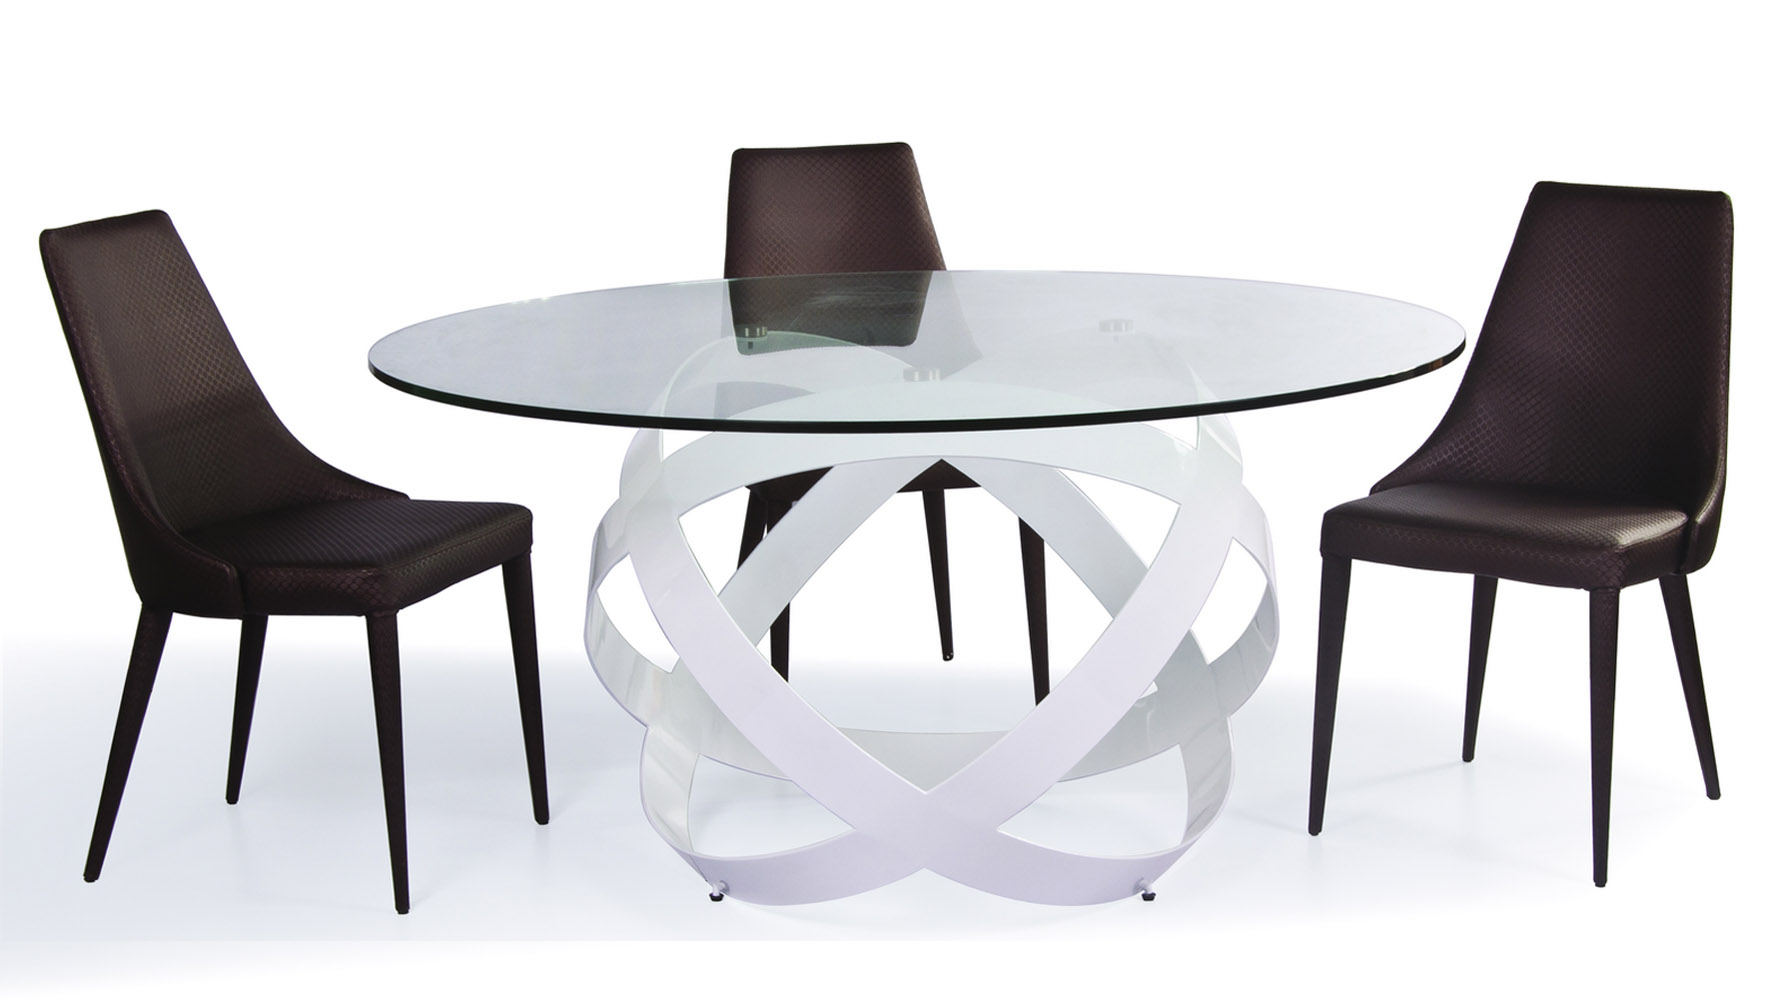 Mambo clear glass top dining table zuri furniture for Dinner table set for 4